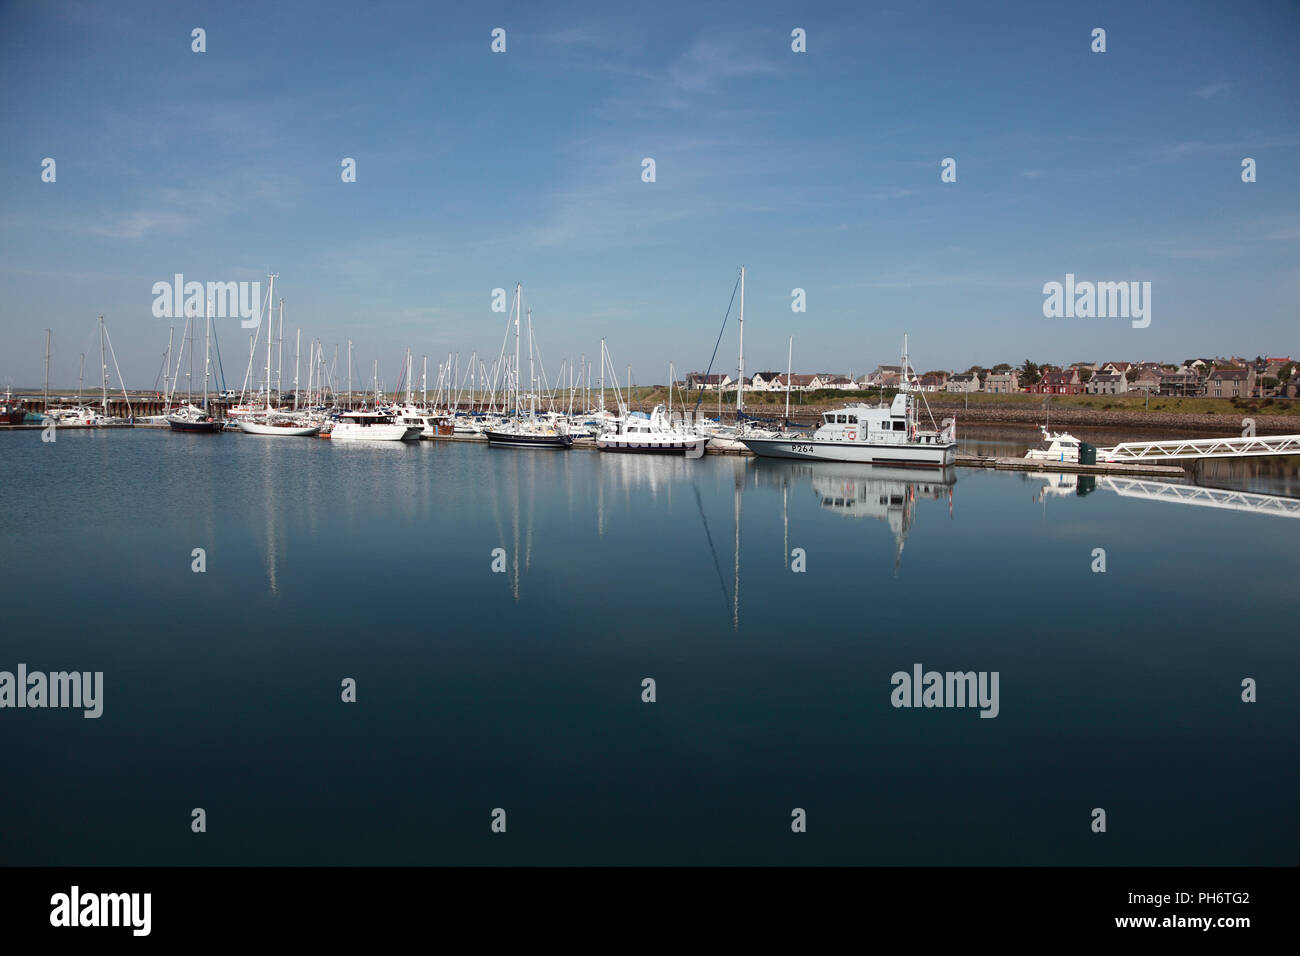 Boats in Kirkwall harbour, Orkney, Scotland - Stock Image